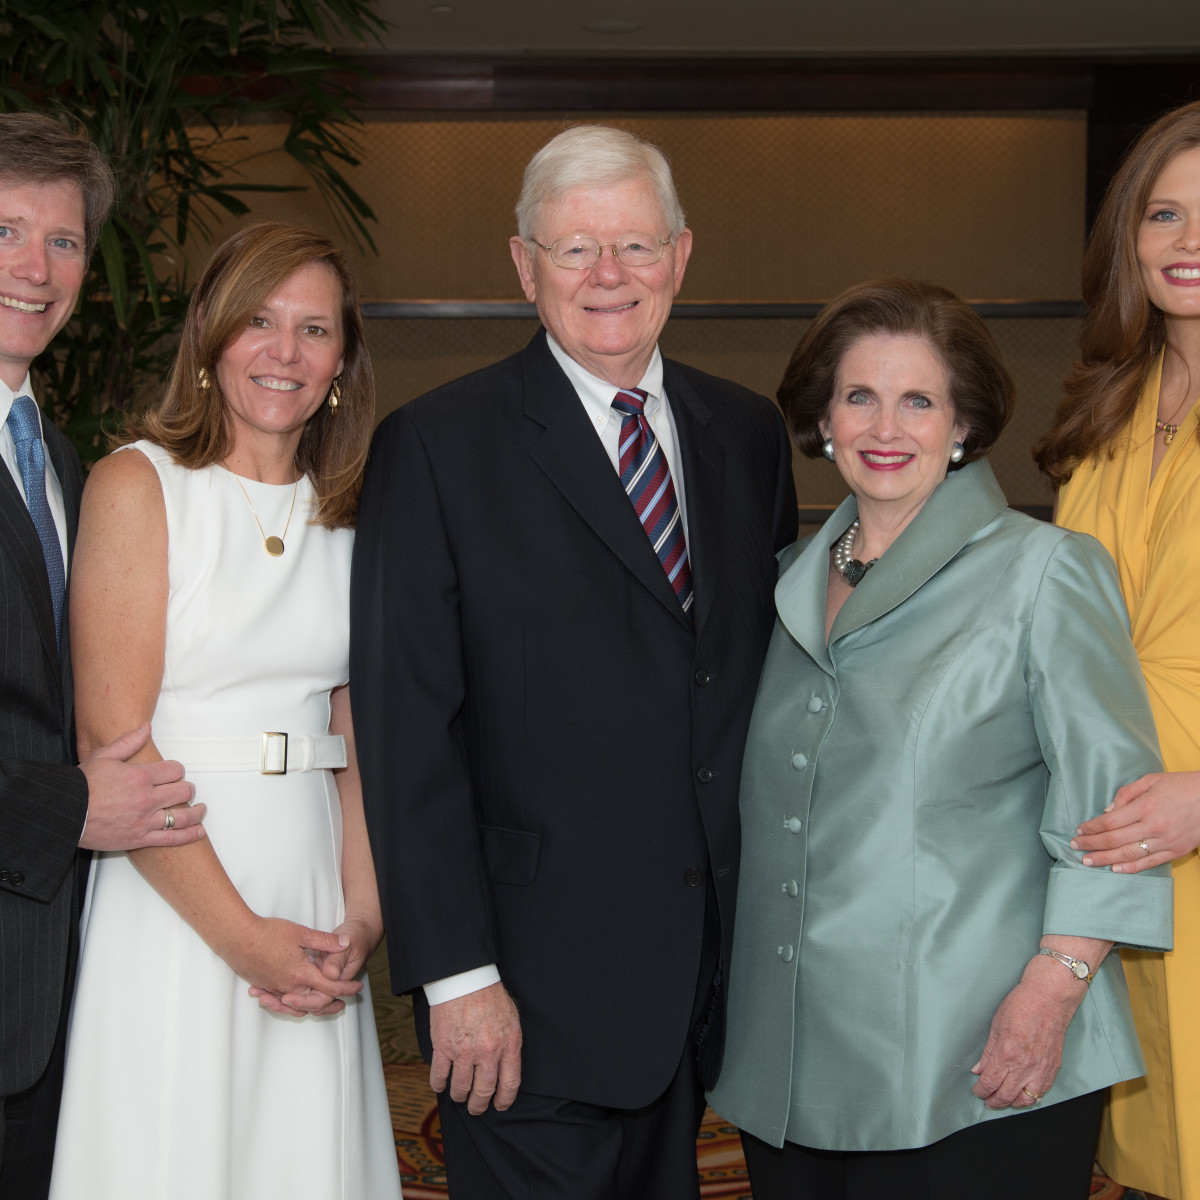 Center for Houston's Future luncheon,  March 2016,  Jonathan Frels, Layne Frels, Kelly Frels, Carmela Frels, Catherine Frels